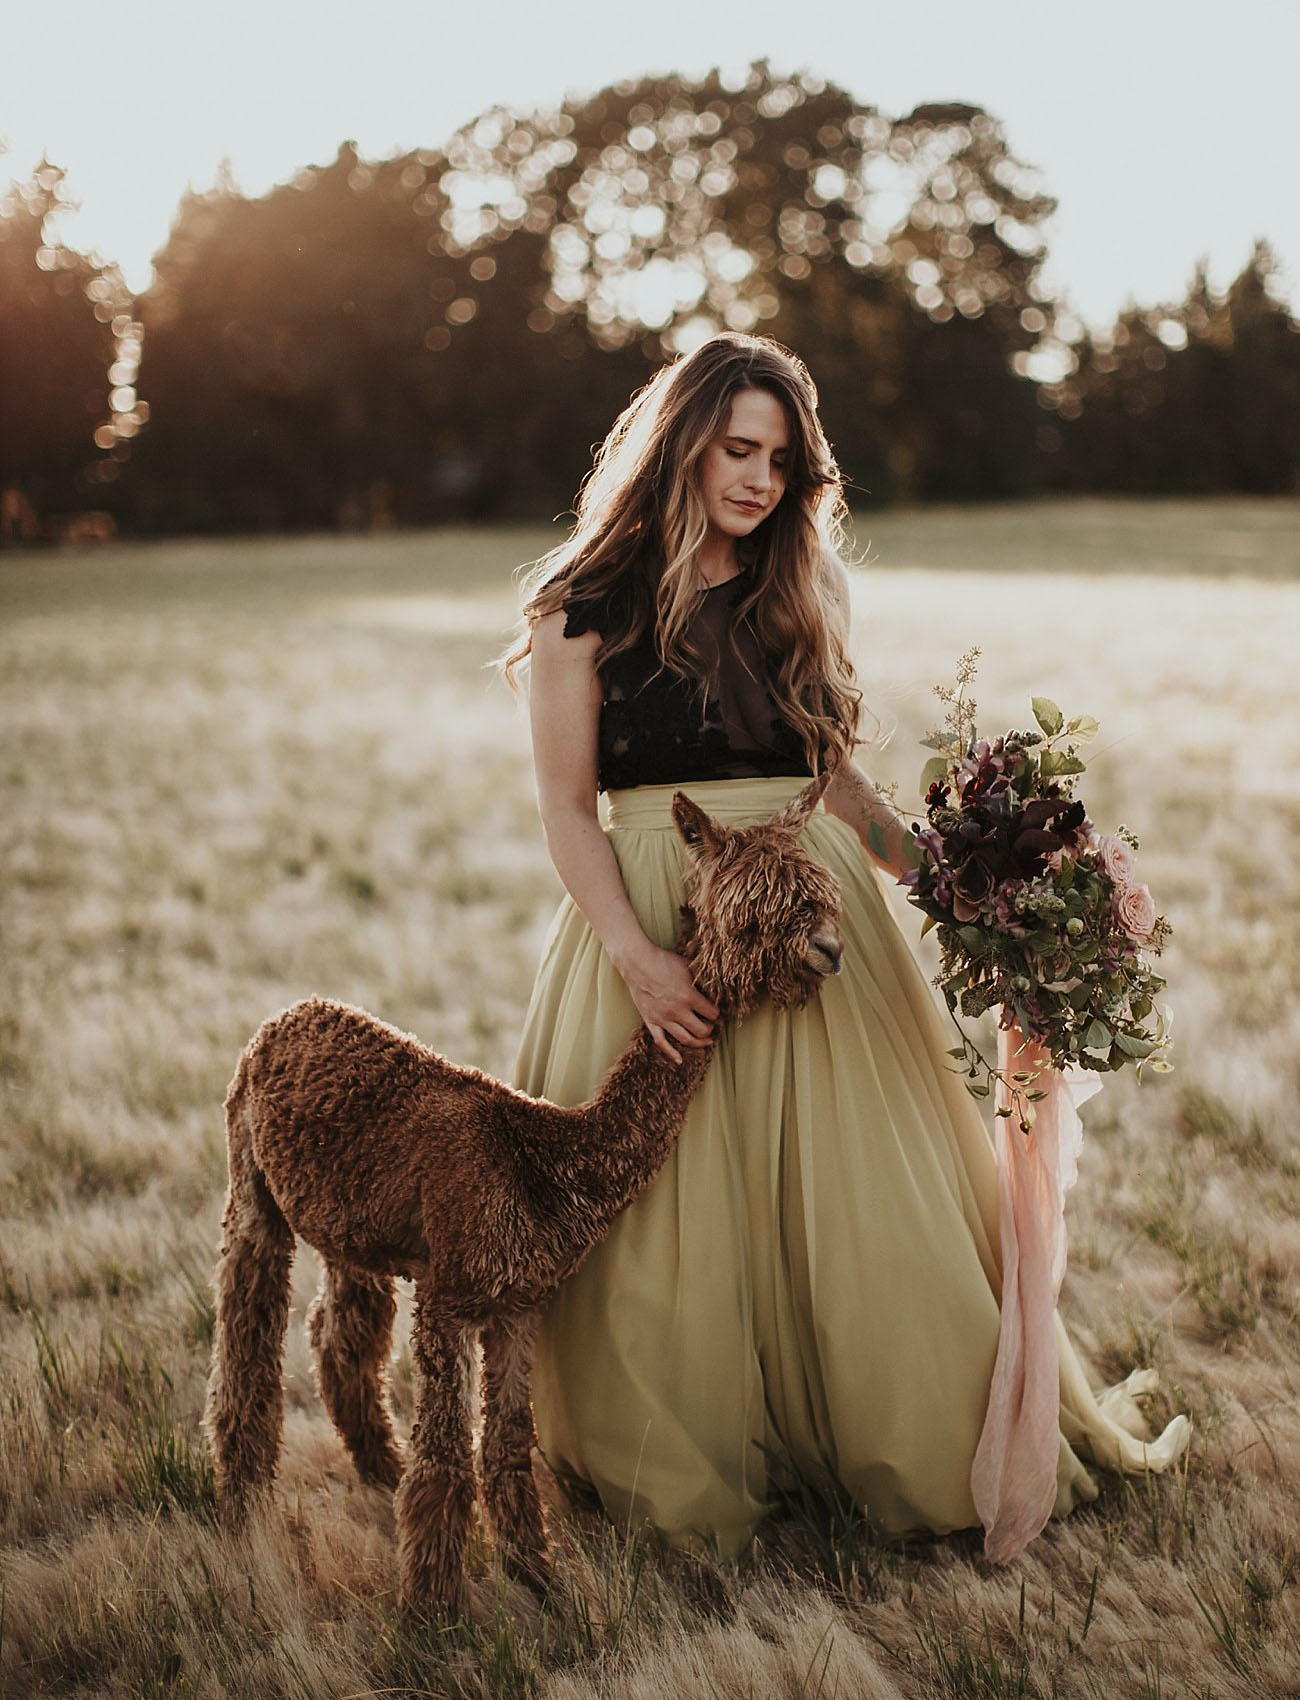 This gorgeous bridal shoot took place in woodlands and on a farm, with alpacas, let's dip into fall shades